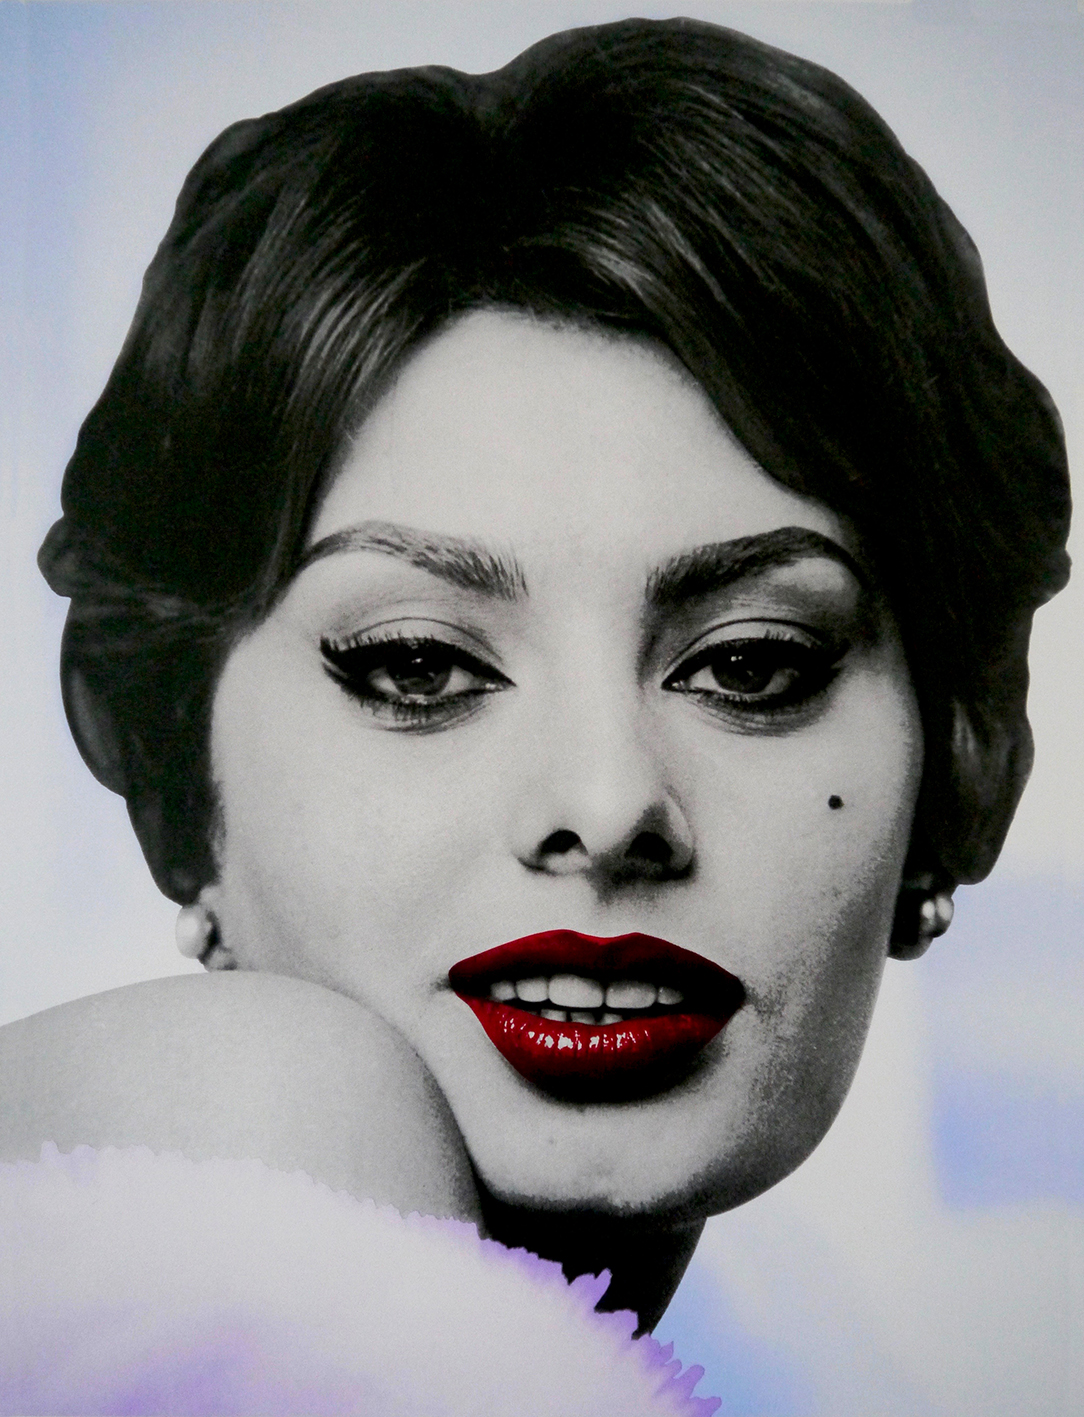 Sophia Loren I and II